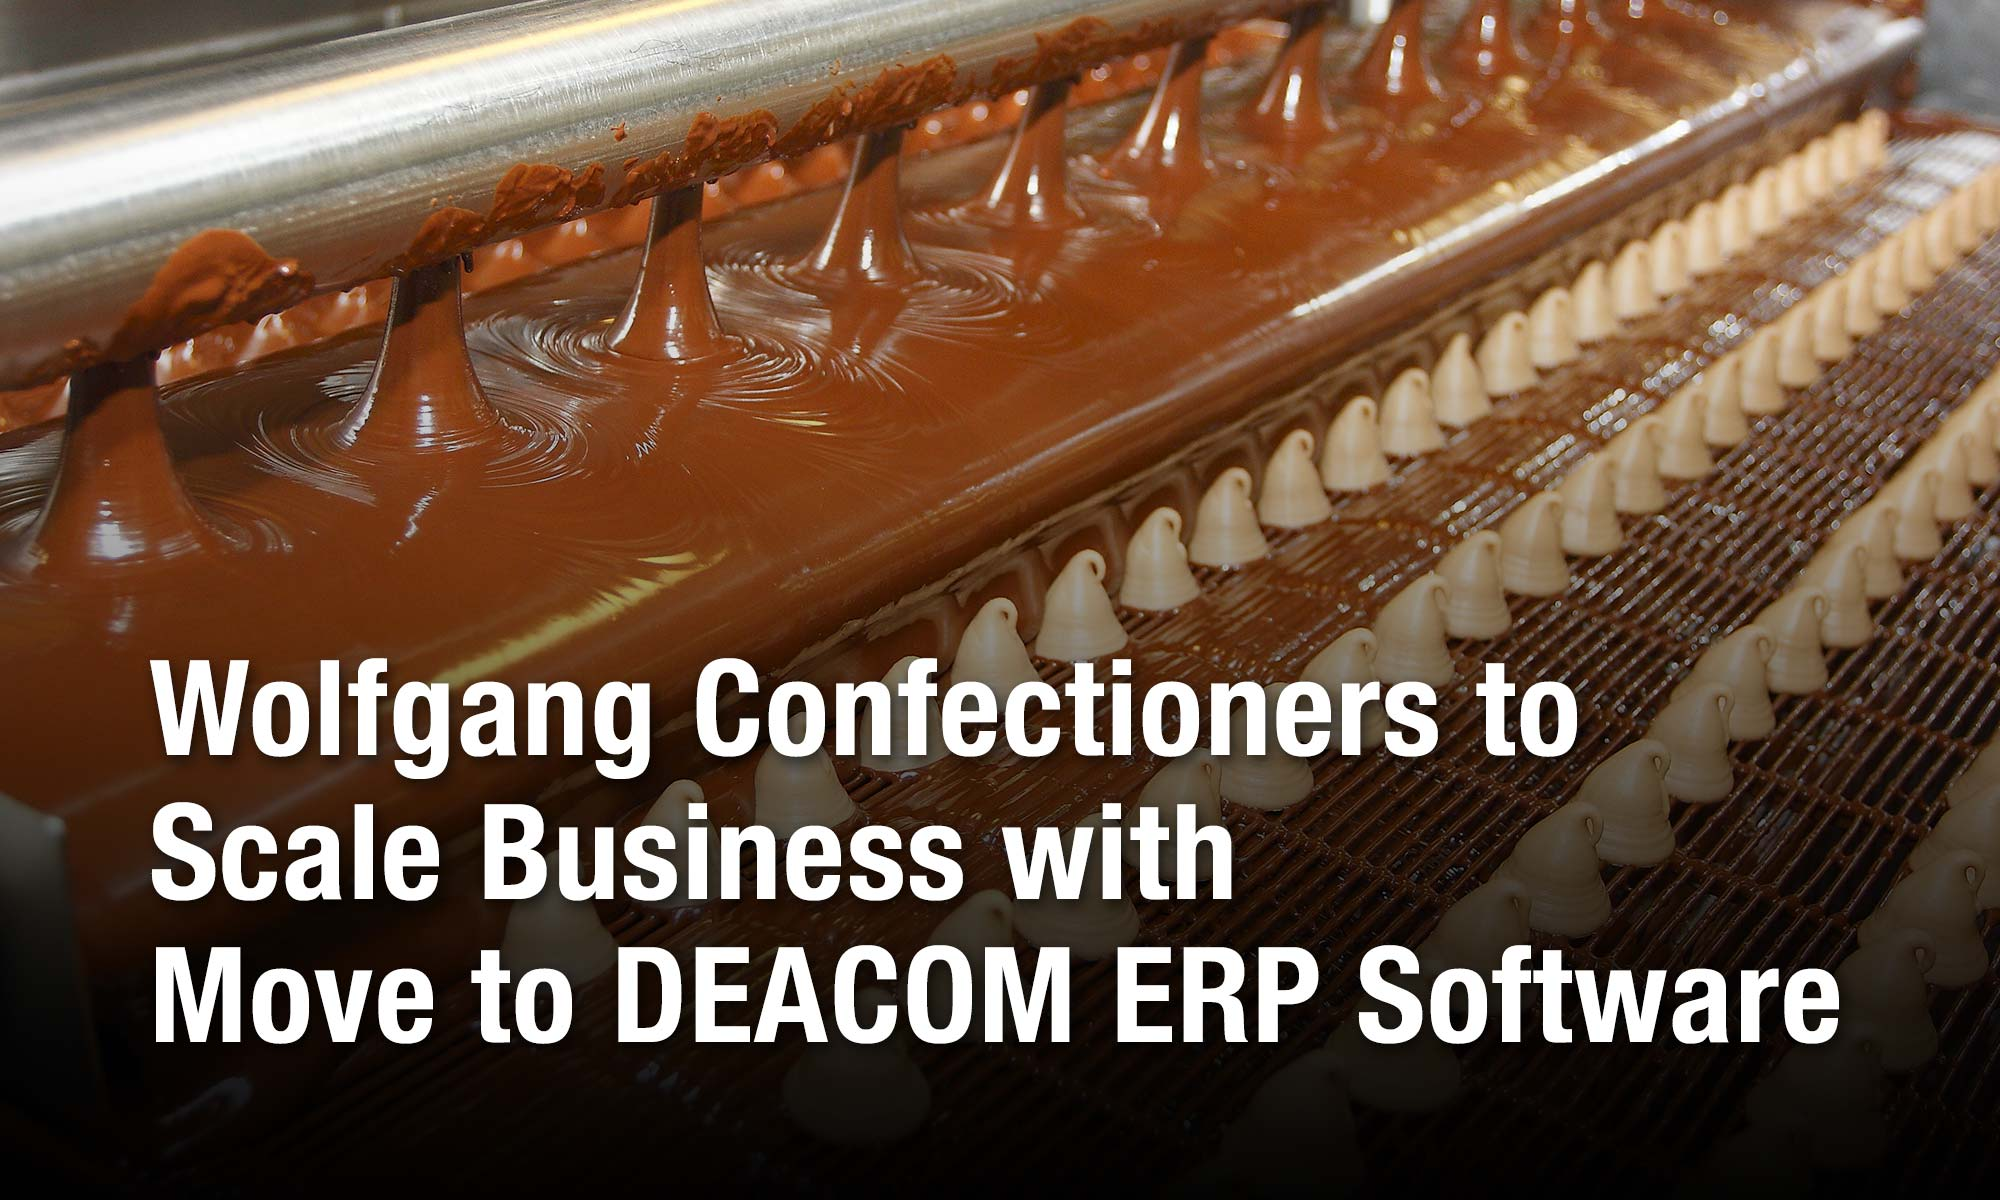 Wolfgang Confectioners to Scale Business with Move to DEACOM ERP Software